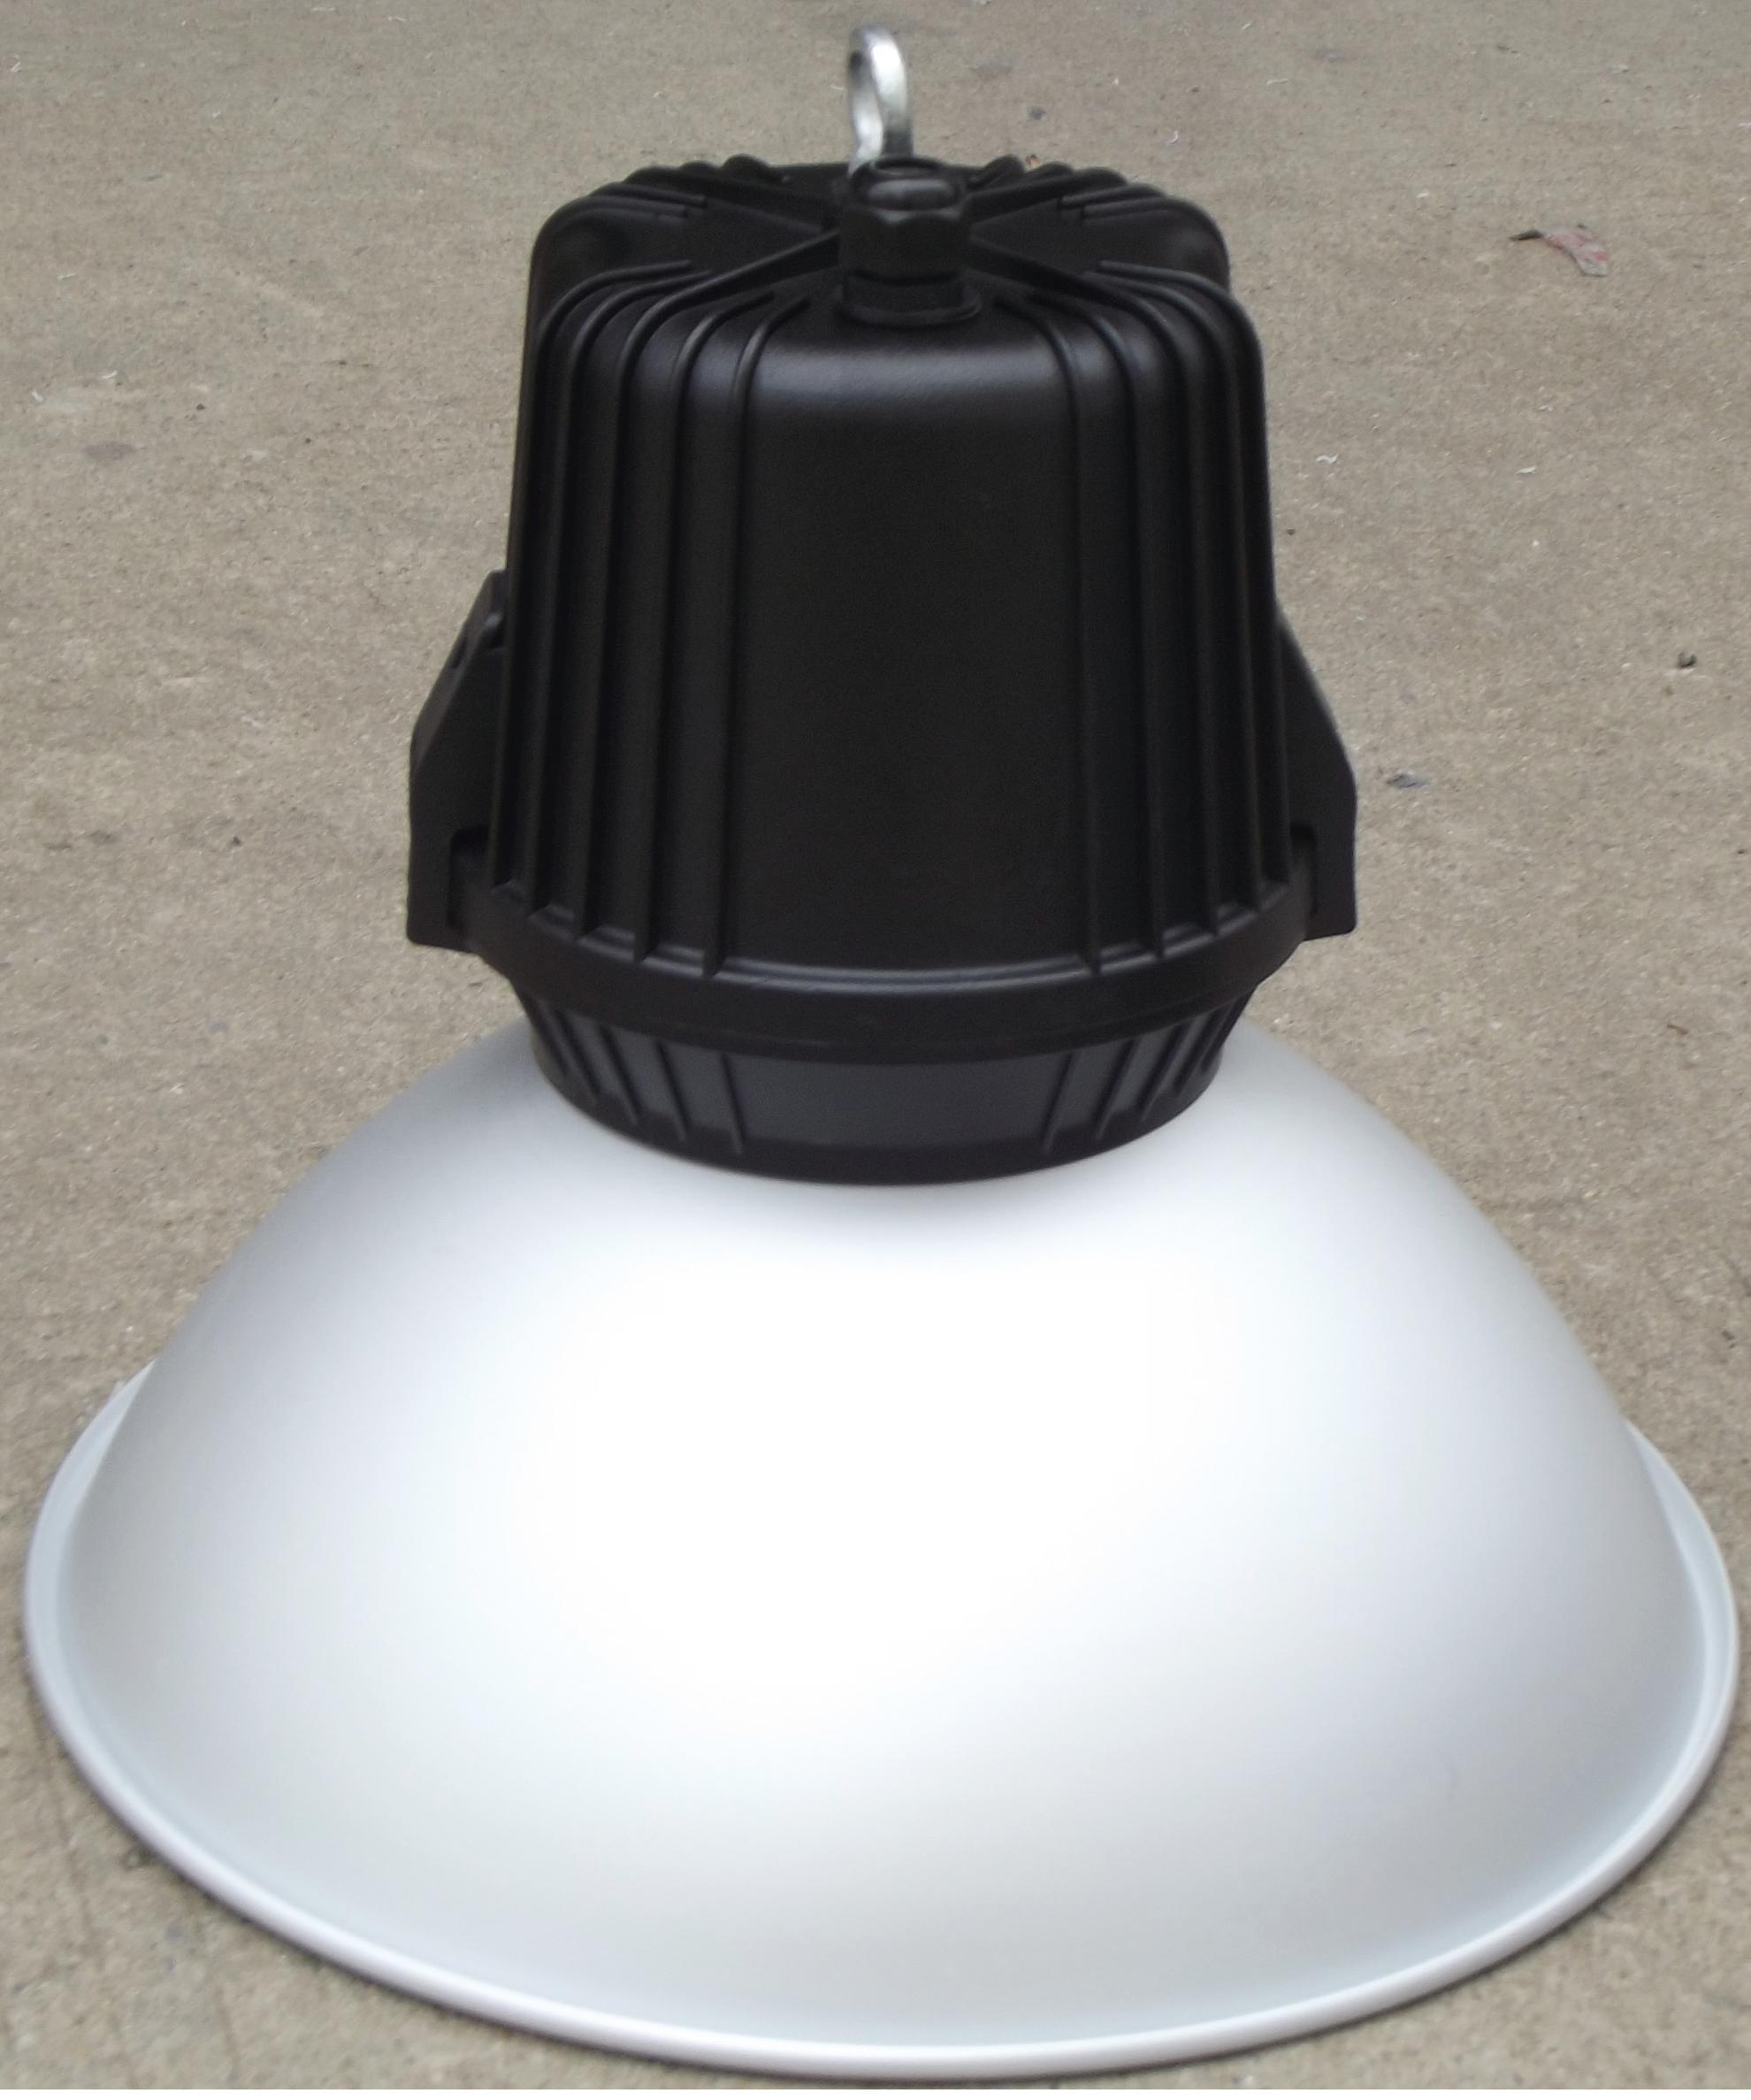 250w metal halide high bay light 250w metal halide high bay light 250w metal halide high bay light 250w metal halide high bay light suppliers and manufacturers at alibaba arubaitofo Images